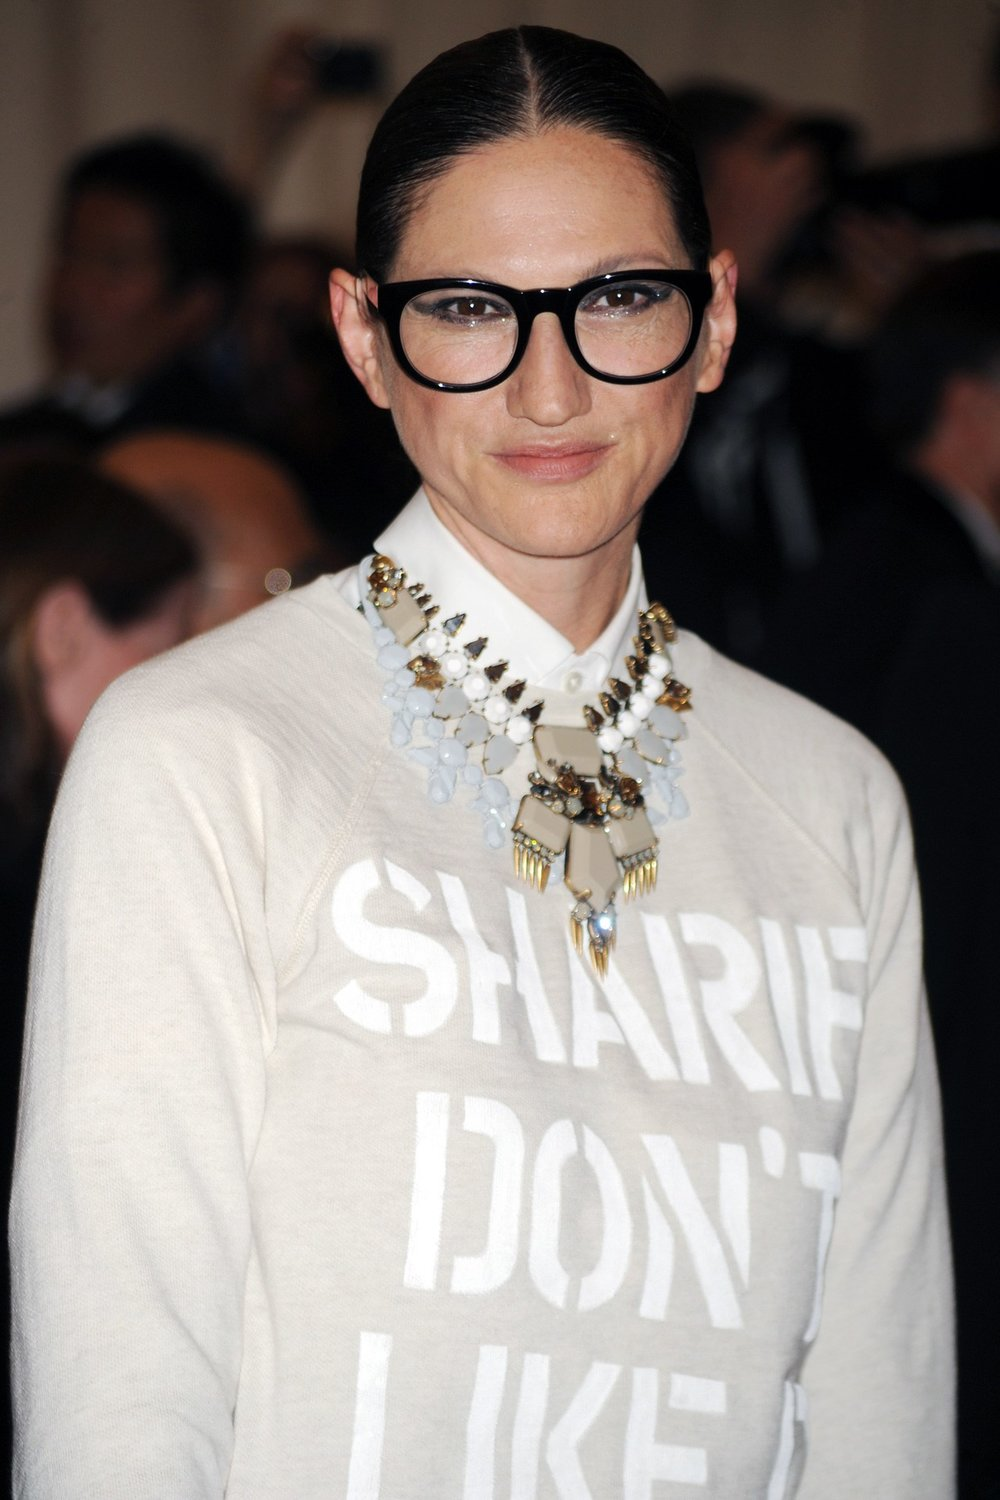 Jenna-Lyons-Vogue-6Nov13-PA_b.jpg